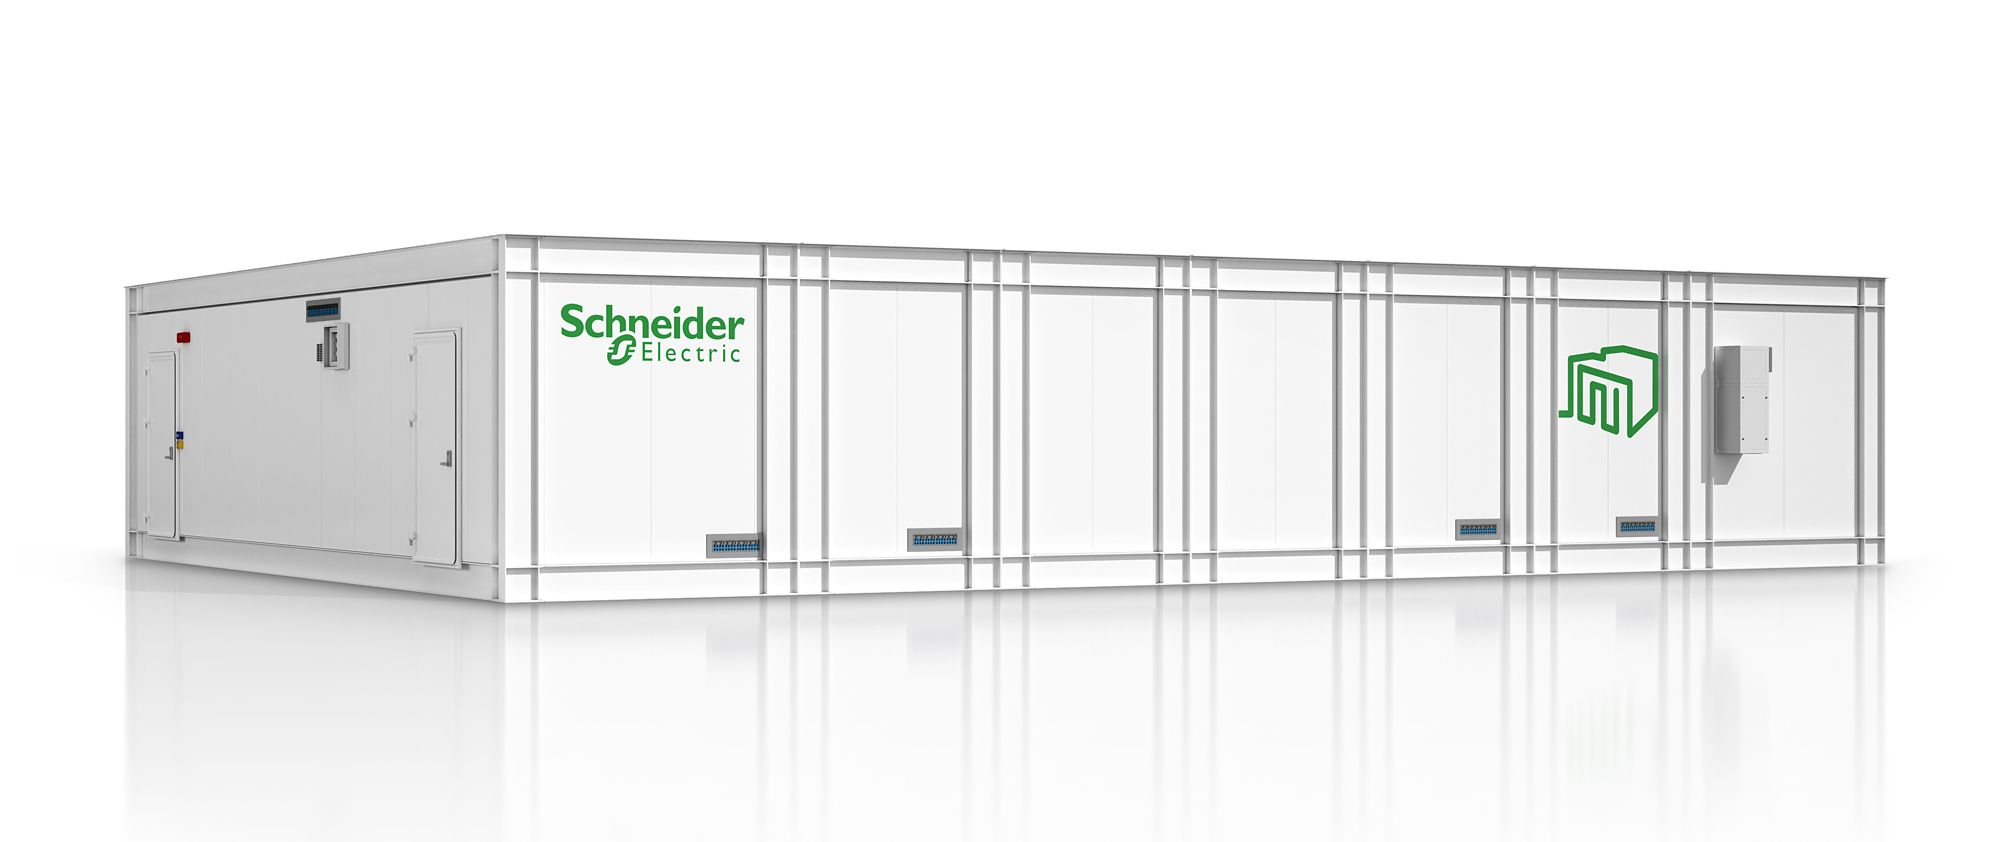 Schneider Electric implementa sus centros de datos modulares EcoStruxure para Green Mountain